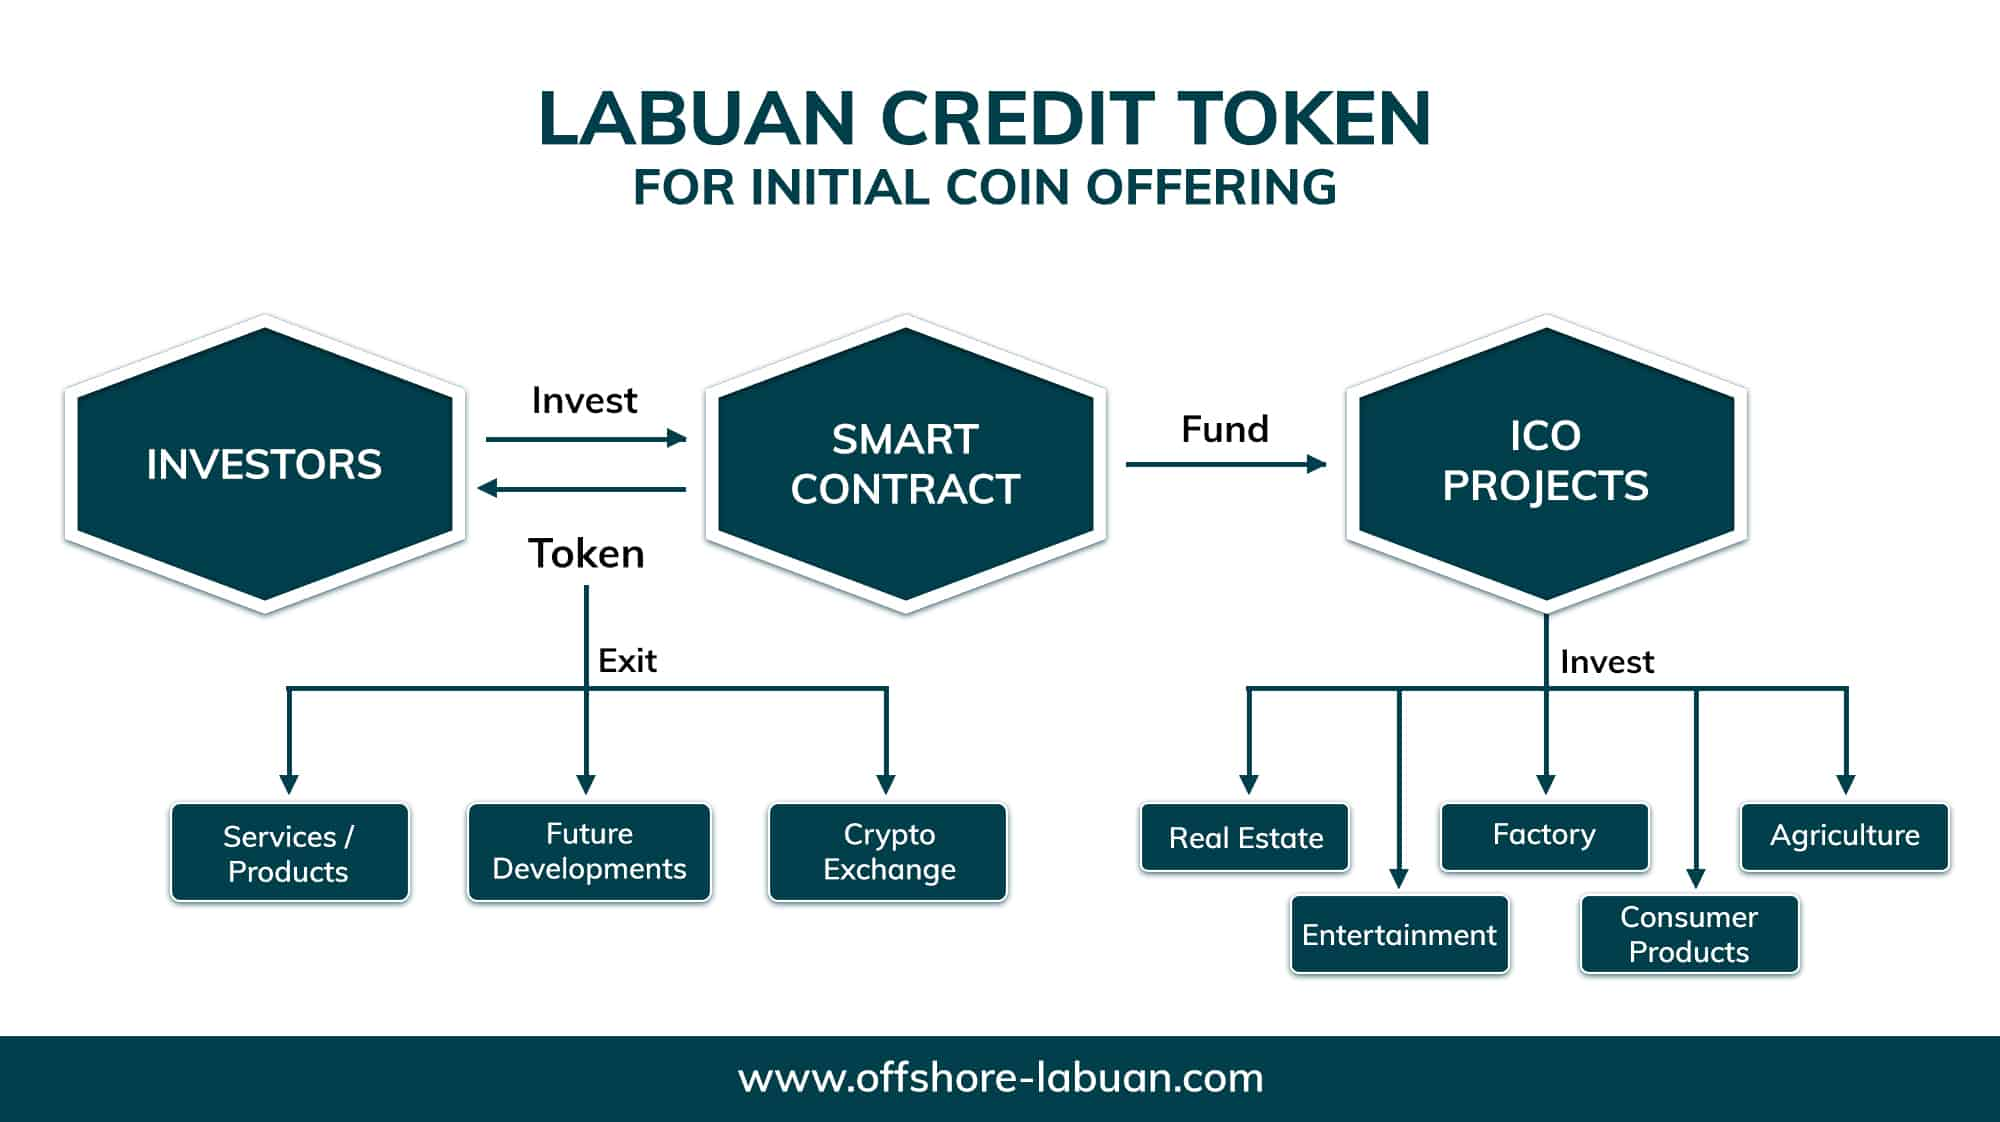 Labuan-Credit-Token-For-Initial-Coin-Offering-1